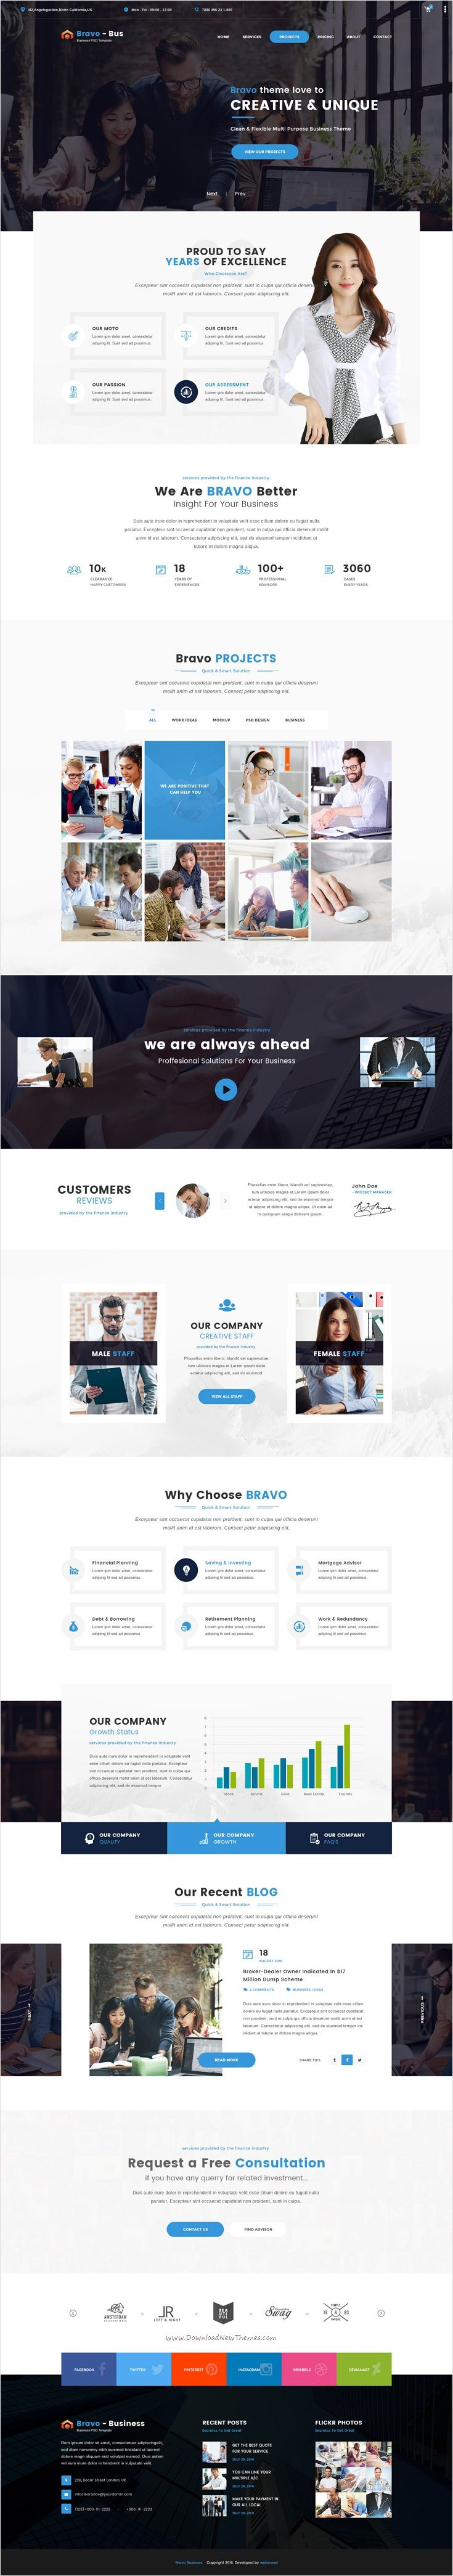 Bravo is a multipurpose #PSD template with awesome collection of #webdesign 8 niches #Business, Consultancy, Restaurant, SEO, Construction, Architecture, SPA, Fashion Shop website with 66 organized PSD pages download now➩ https://themeforest.net/item/bravo-multipurpose-psd-template/17361644?ref=Datasata